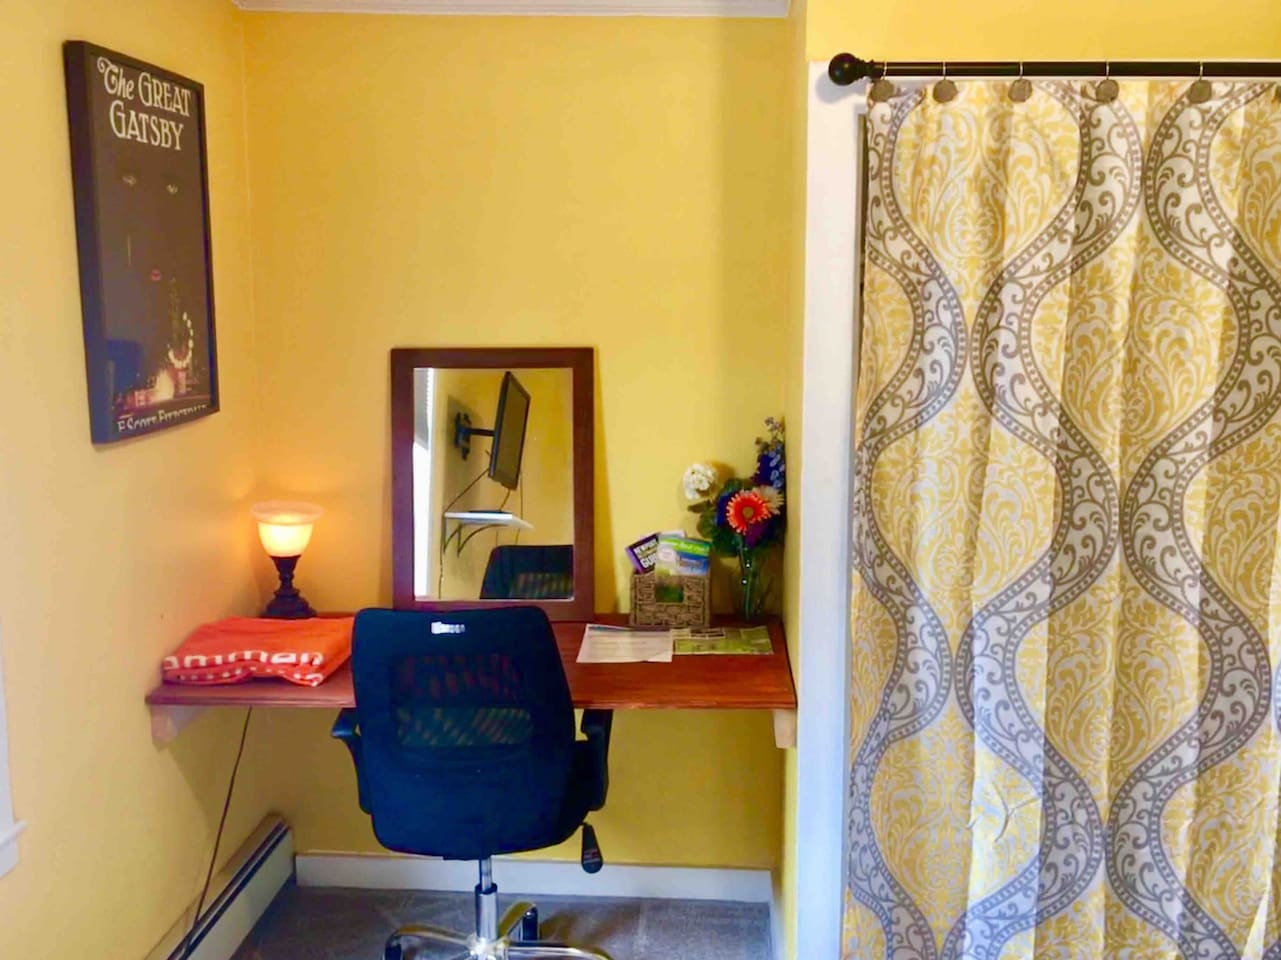 Bright & Cheery room with a great built in desk! Makes a great work place and/or vanity for getting ready to hit the town!!!